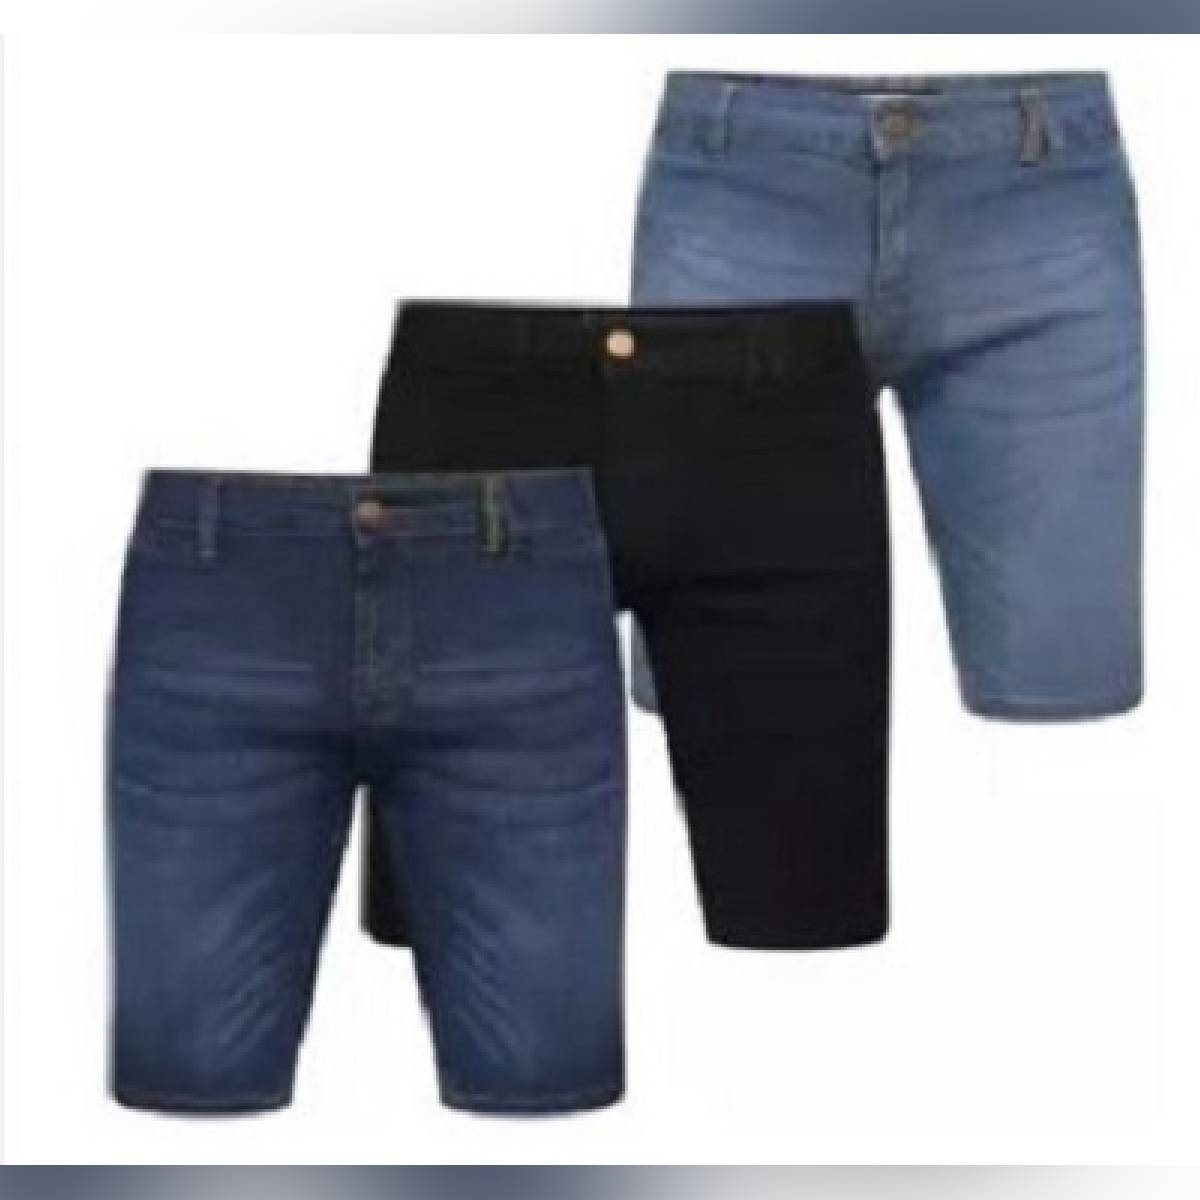 pack of 3 Men's Denim Shorts Fashion Casual Slim Fit Elastic Jeans Shorts Male